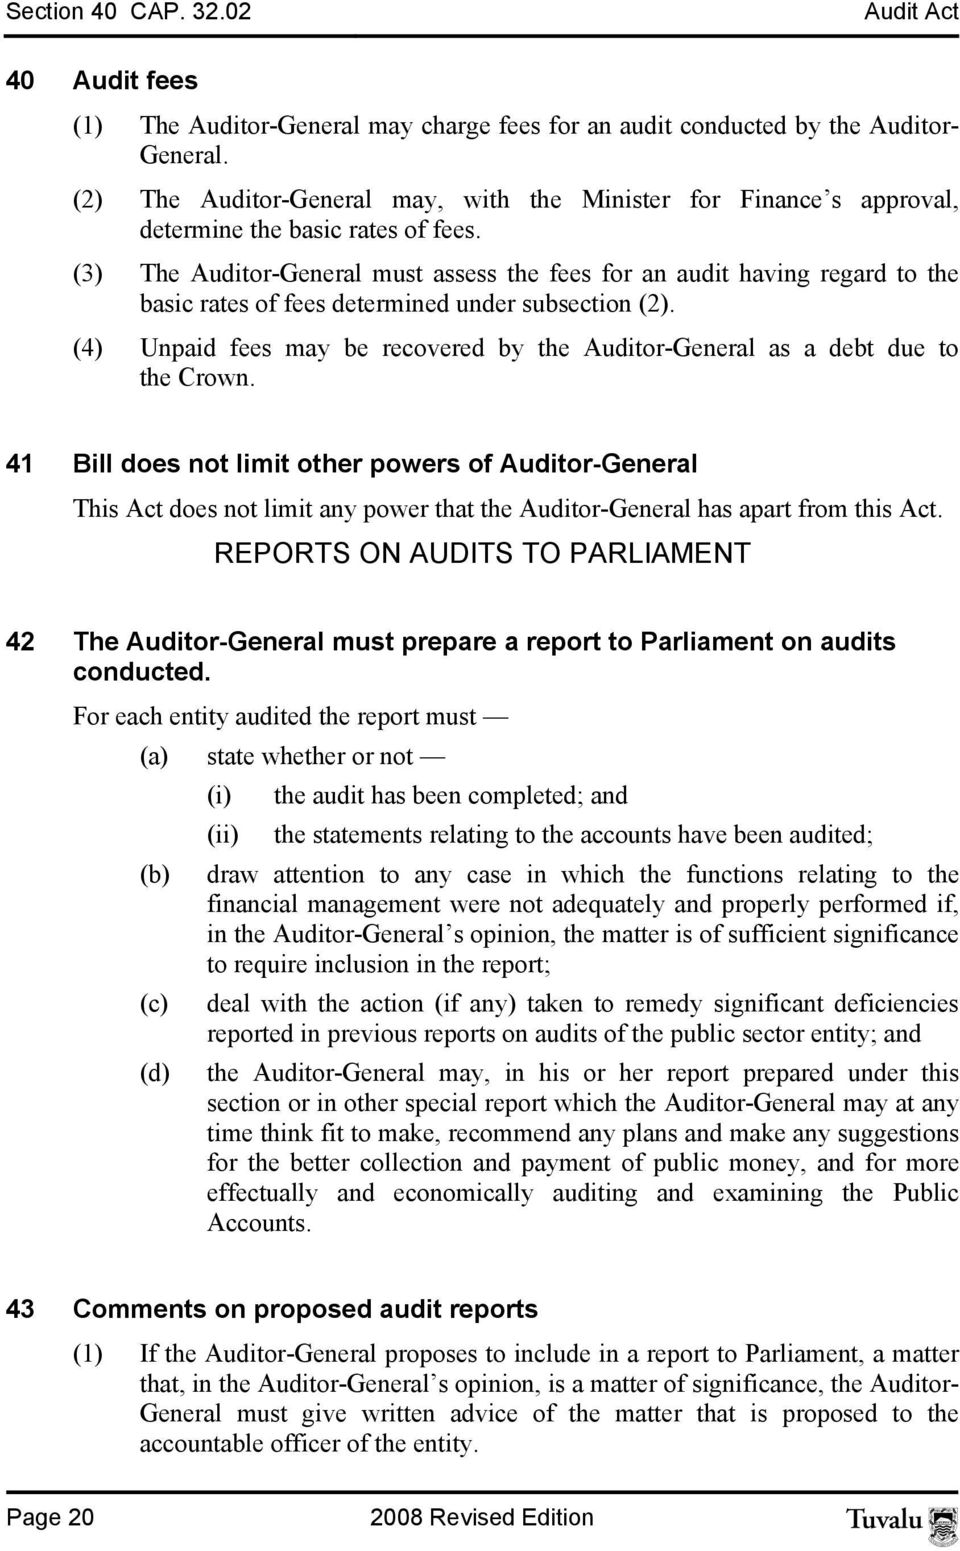 (3) The Auditor-General must assess the fees for an audit having regard to the basic rates of fees determined under subsection (2).